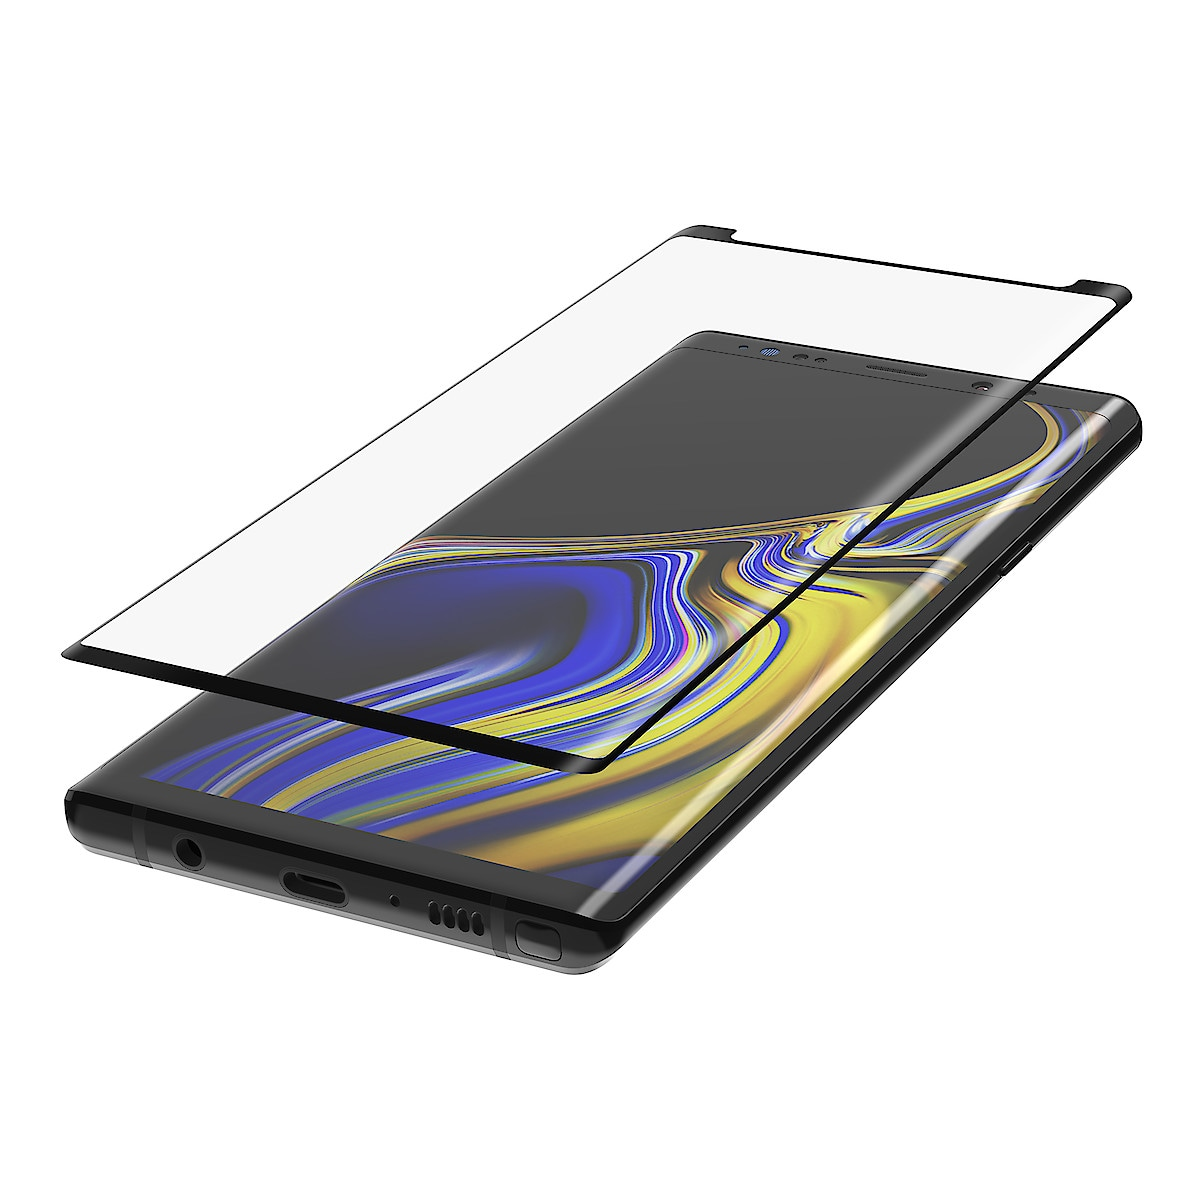 Belkin Screenforce TemperedCurve Screen Protector for Samsung Galaxy Note 9